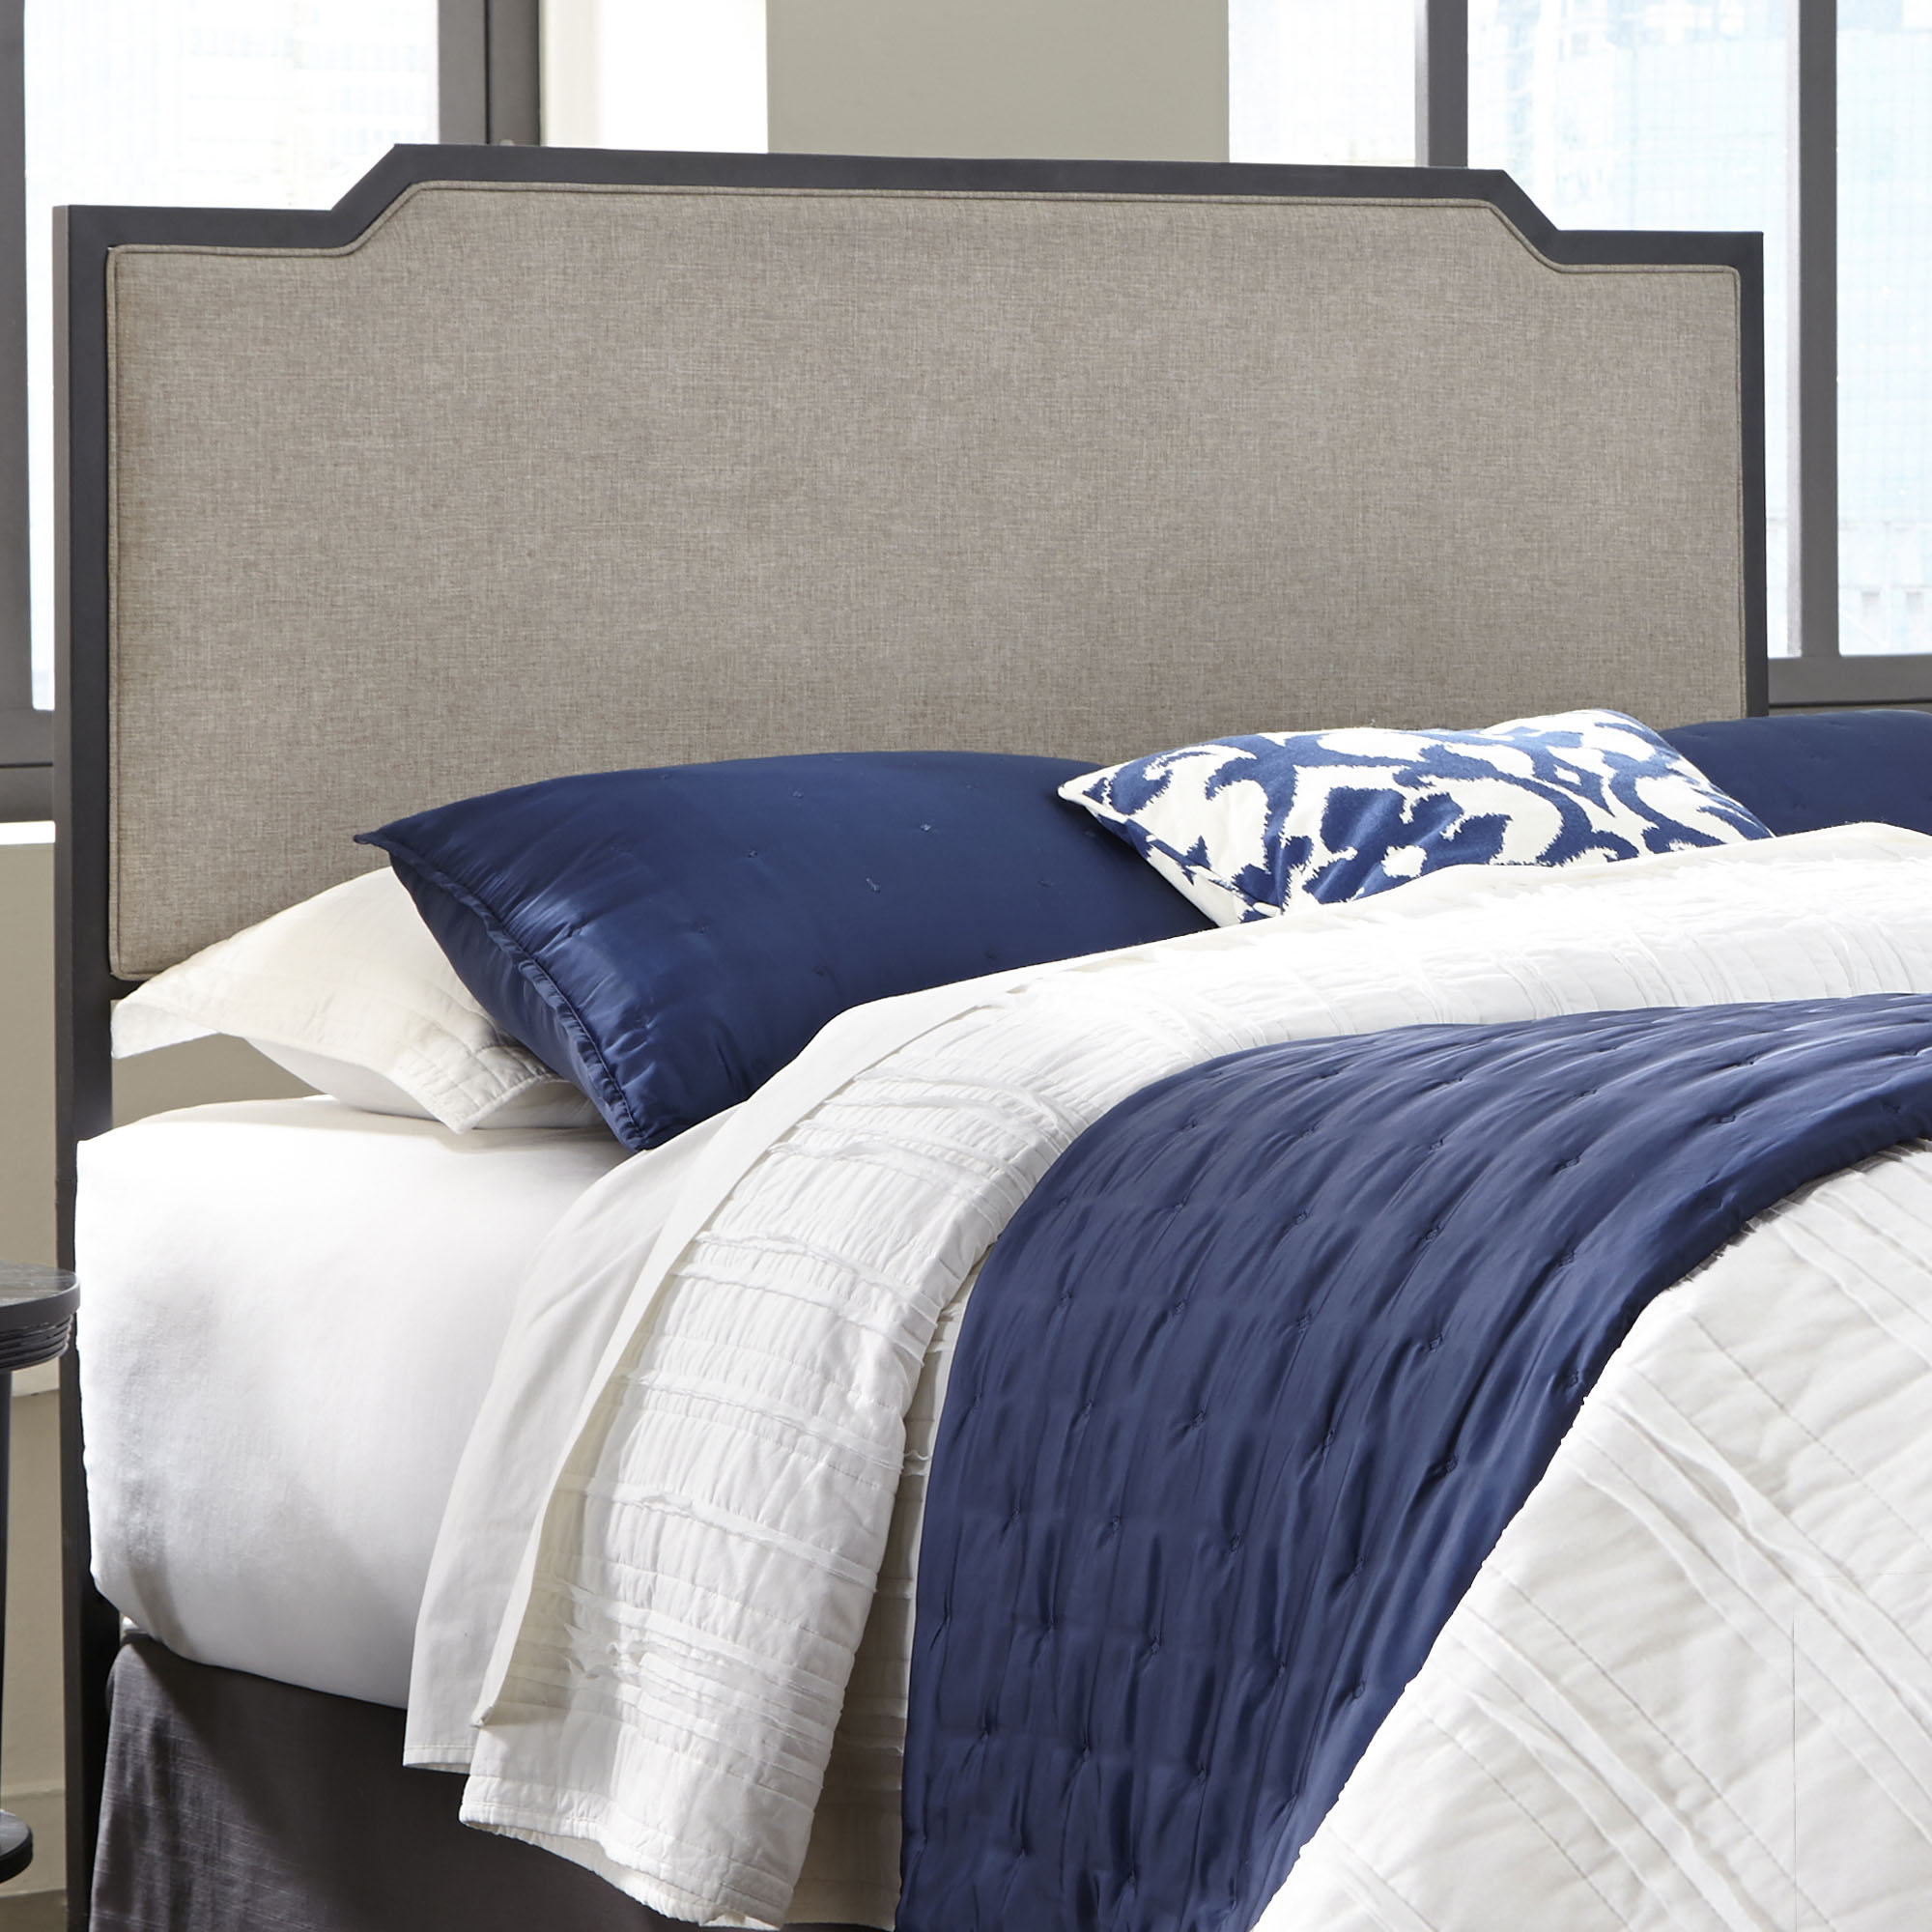 Bayview Metal Headboard Panel with Gray Sand Upholstery, Black Pearl Finish, Twin